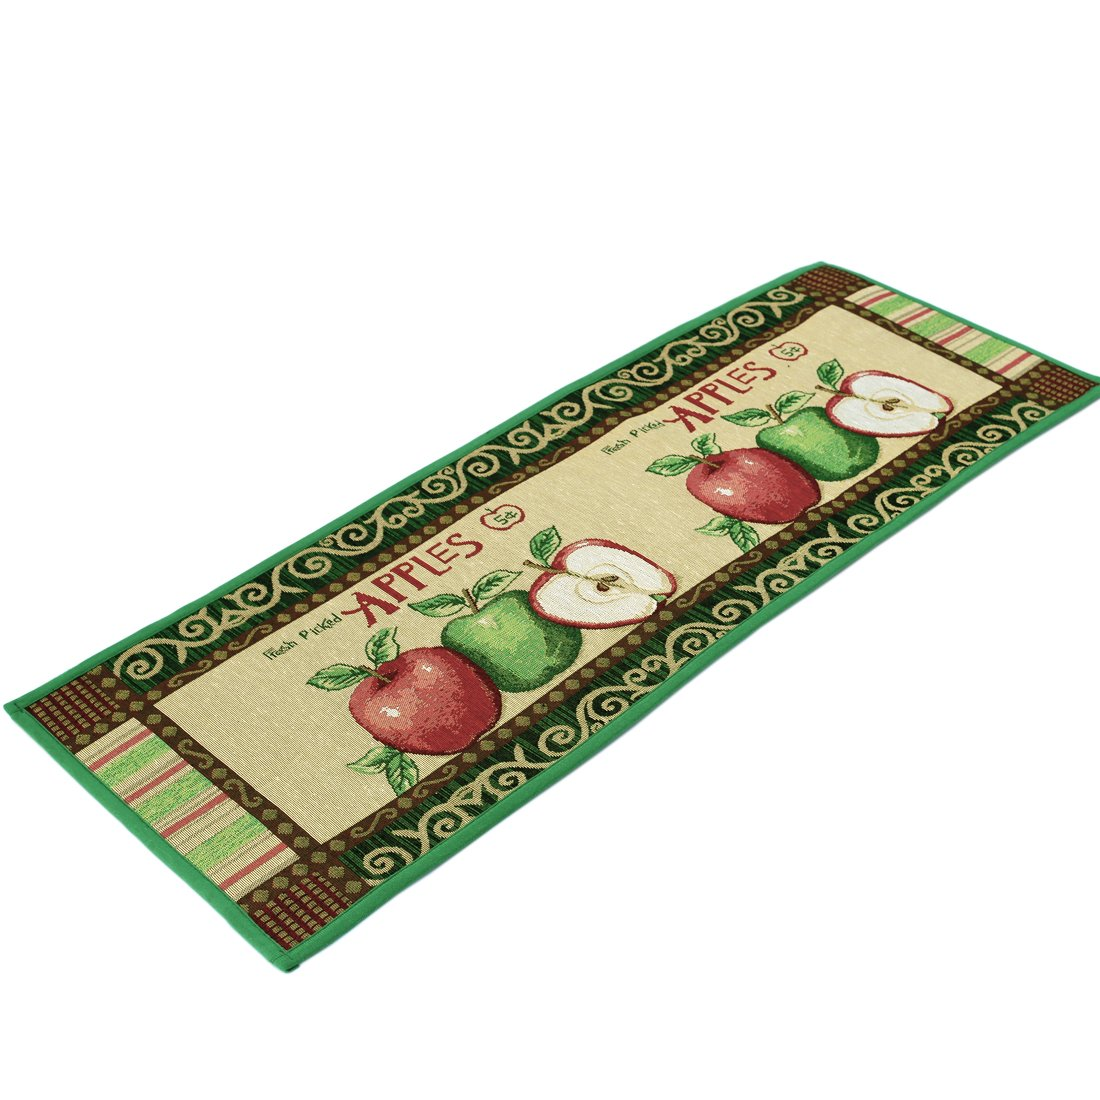 Kitchen Rugs Apple Non Slip Kitchen Mat Extra Long Runner Area Rug for Kitchen Jacquard Bathroom Carpet Printed Floor Rugs,18 x 47 Inches by Amian Shop (Image #3)